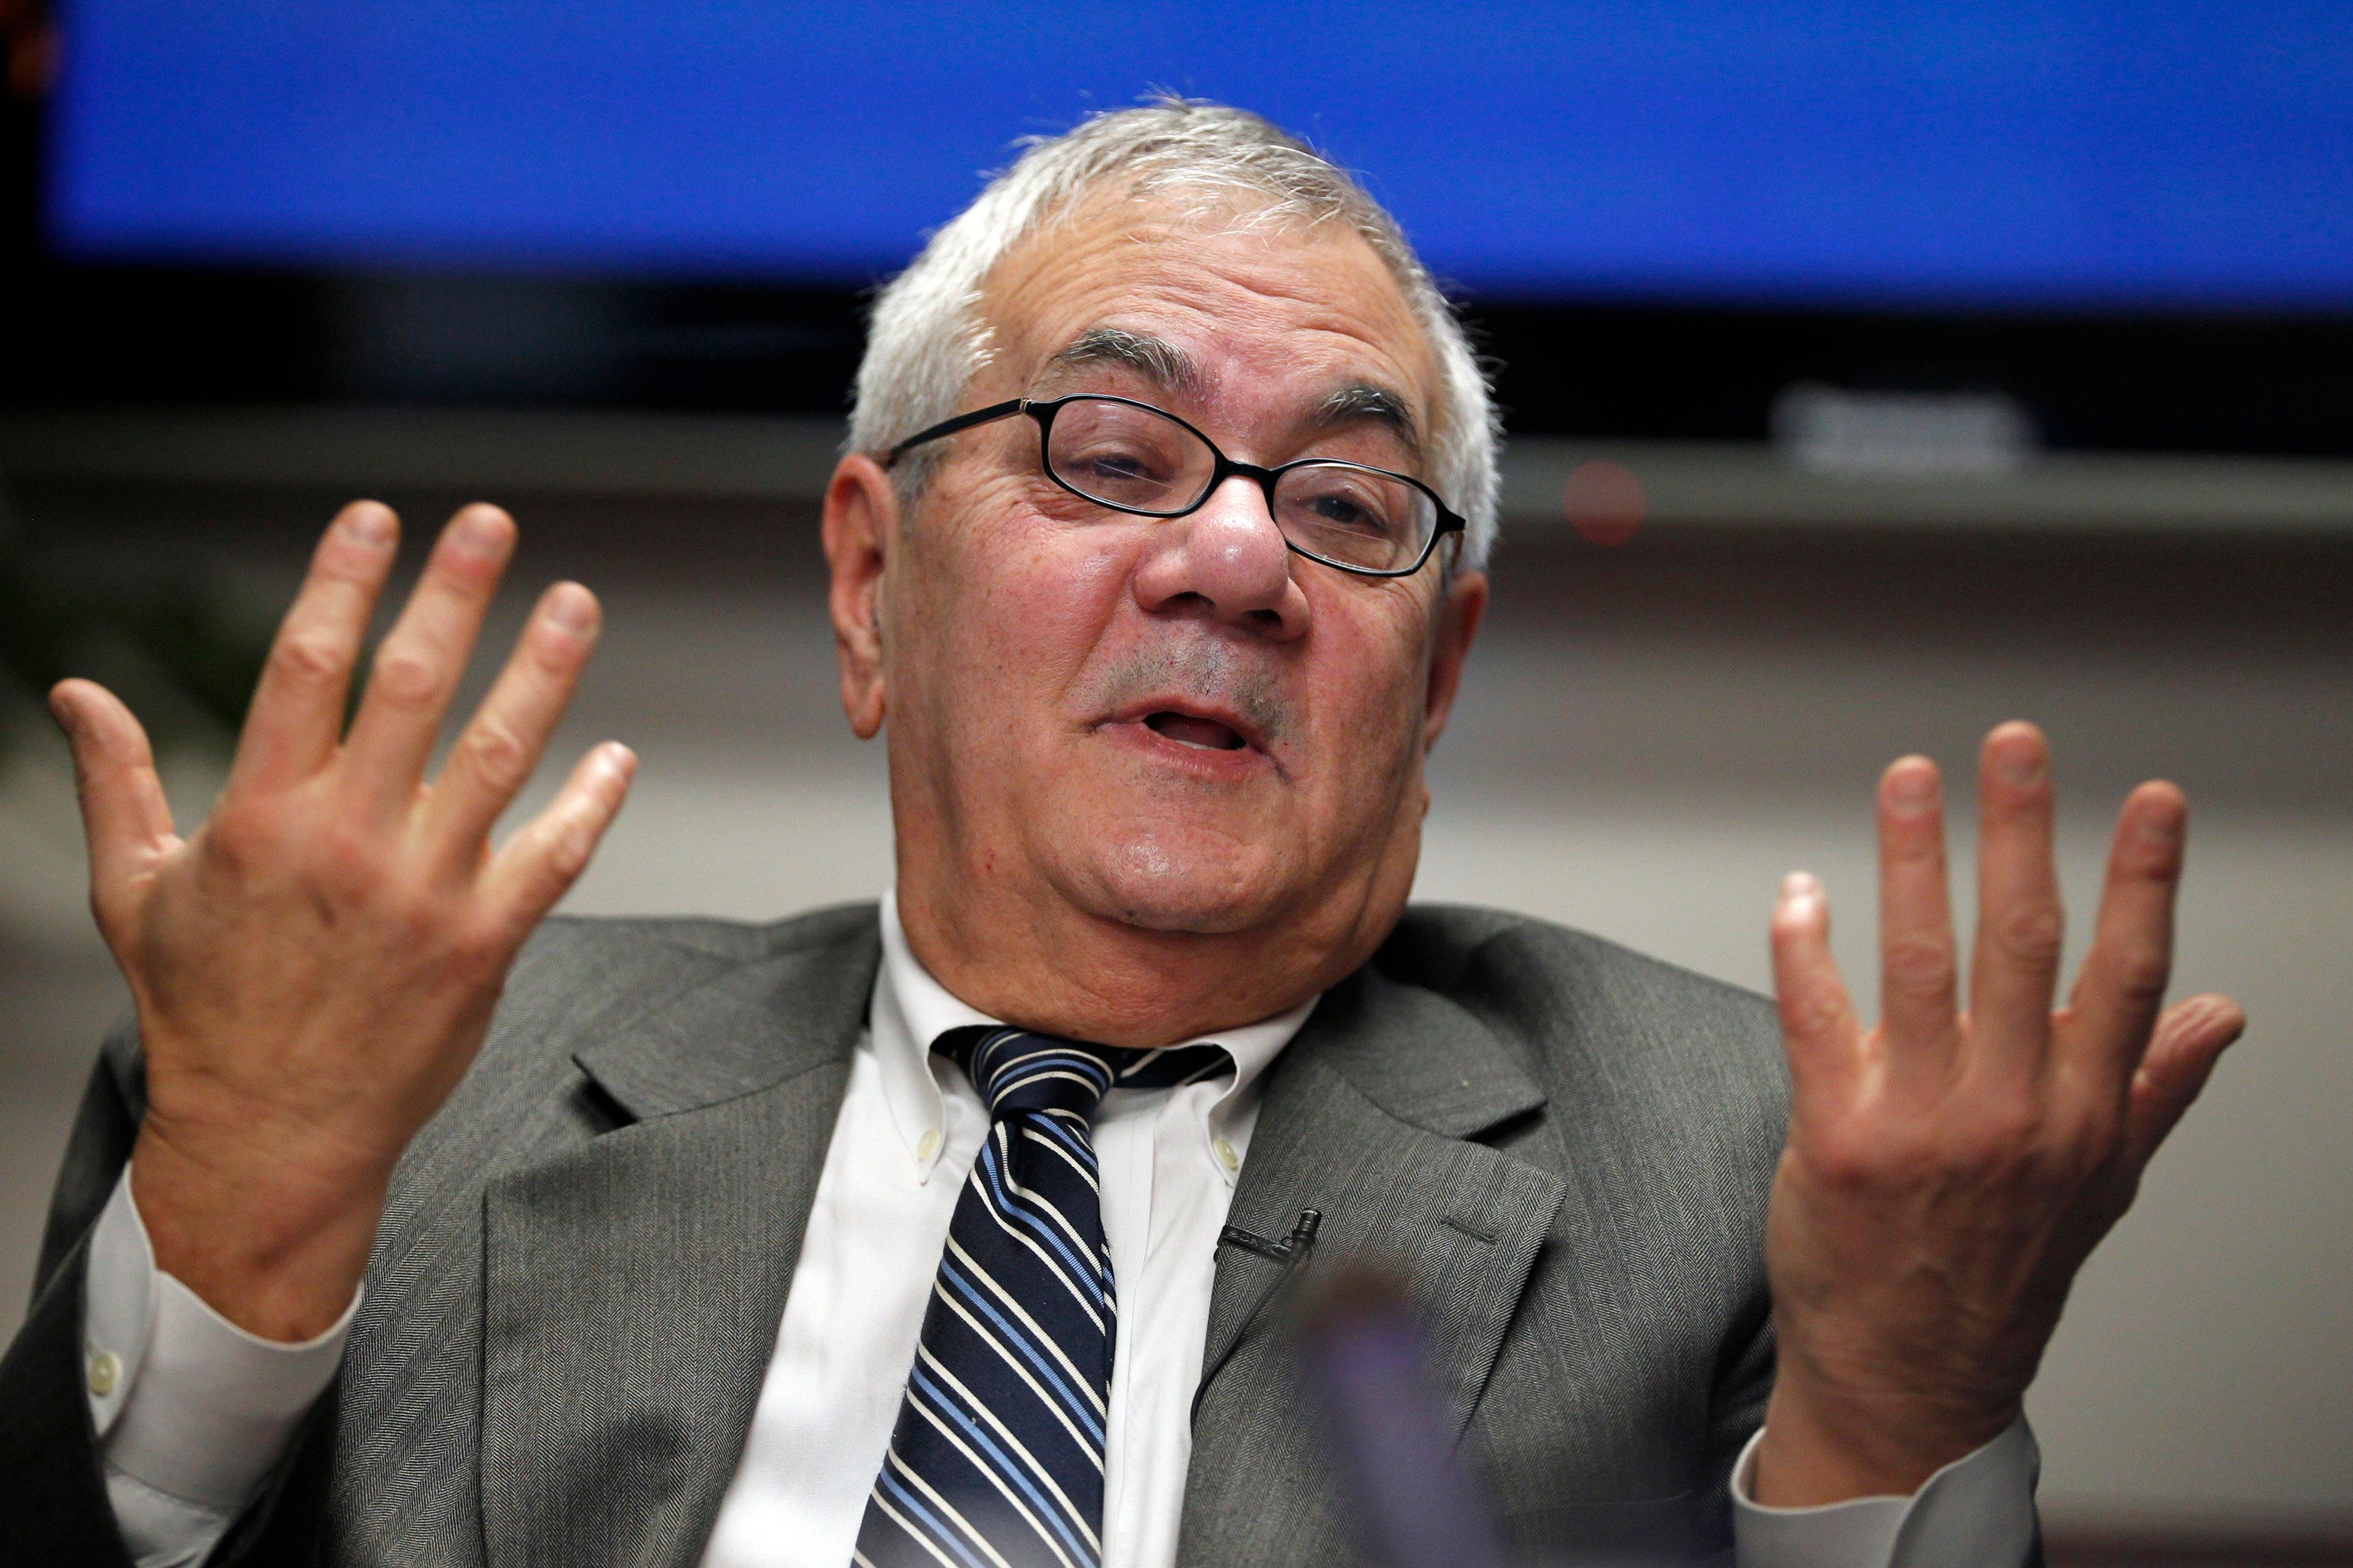 U.S. Representative Barney Frank (D-MA) speaks during the Reuters Future Face of Finance Summit in Washington, March 2, 2011. The summit brings together policymakers and financial leaders to give their views and news on who will come out on top, which countries are emerging as hostile environments to business, which firms may dodge the toughest reforms and which mergers will stick. REUTERS/Hyungwon Kang (UNITED STATES - Tags: BUSINESS POLITICS HEADSHOT)